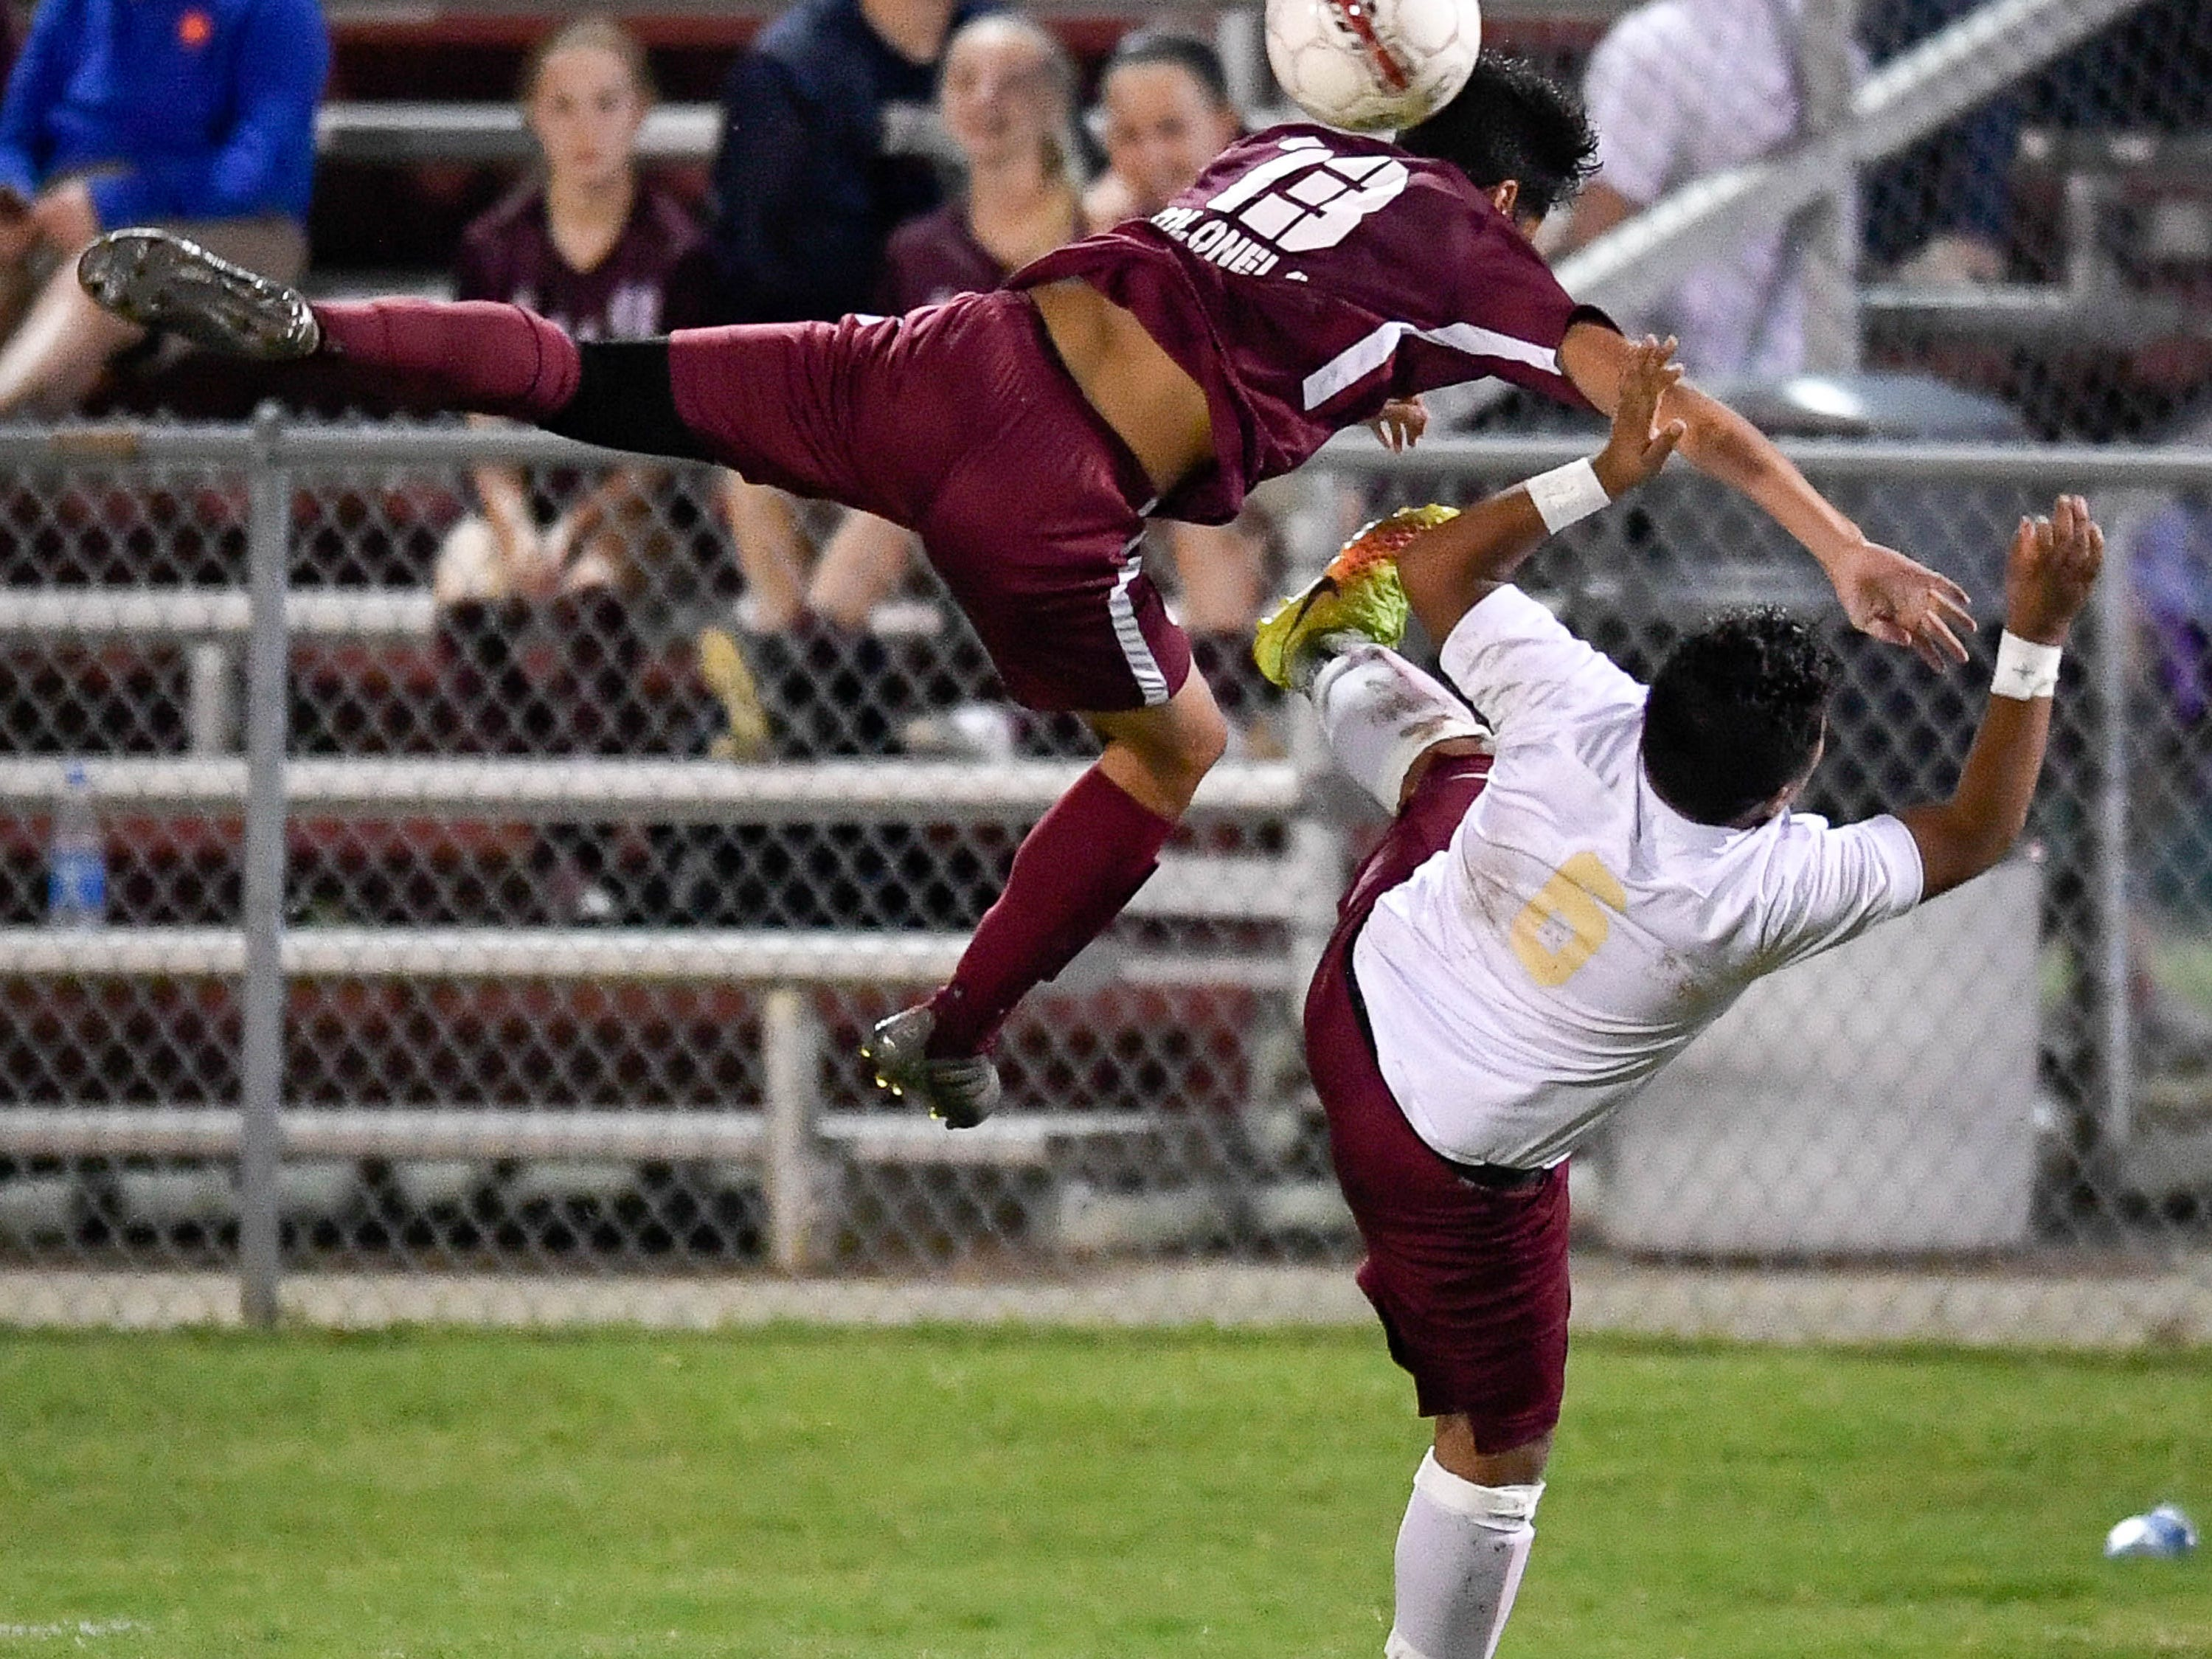 Henderson County's Ed Zeron (13) and Webster's Jorge Martinez (6) try to head the ball as the Henderson County Colonels play the Webster County Trojans in the Sixth District Soccer Tournament at Colonel Field Wednesday, October 10, 2018.